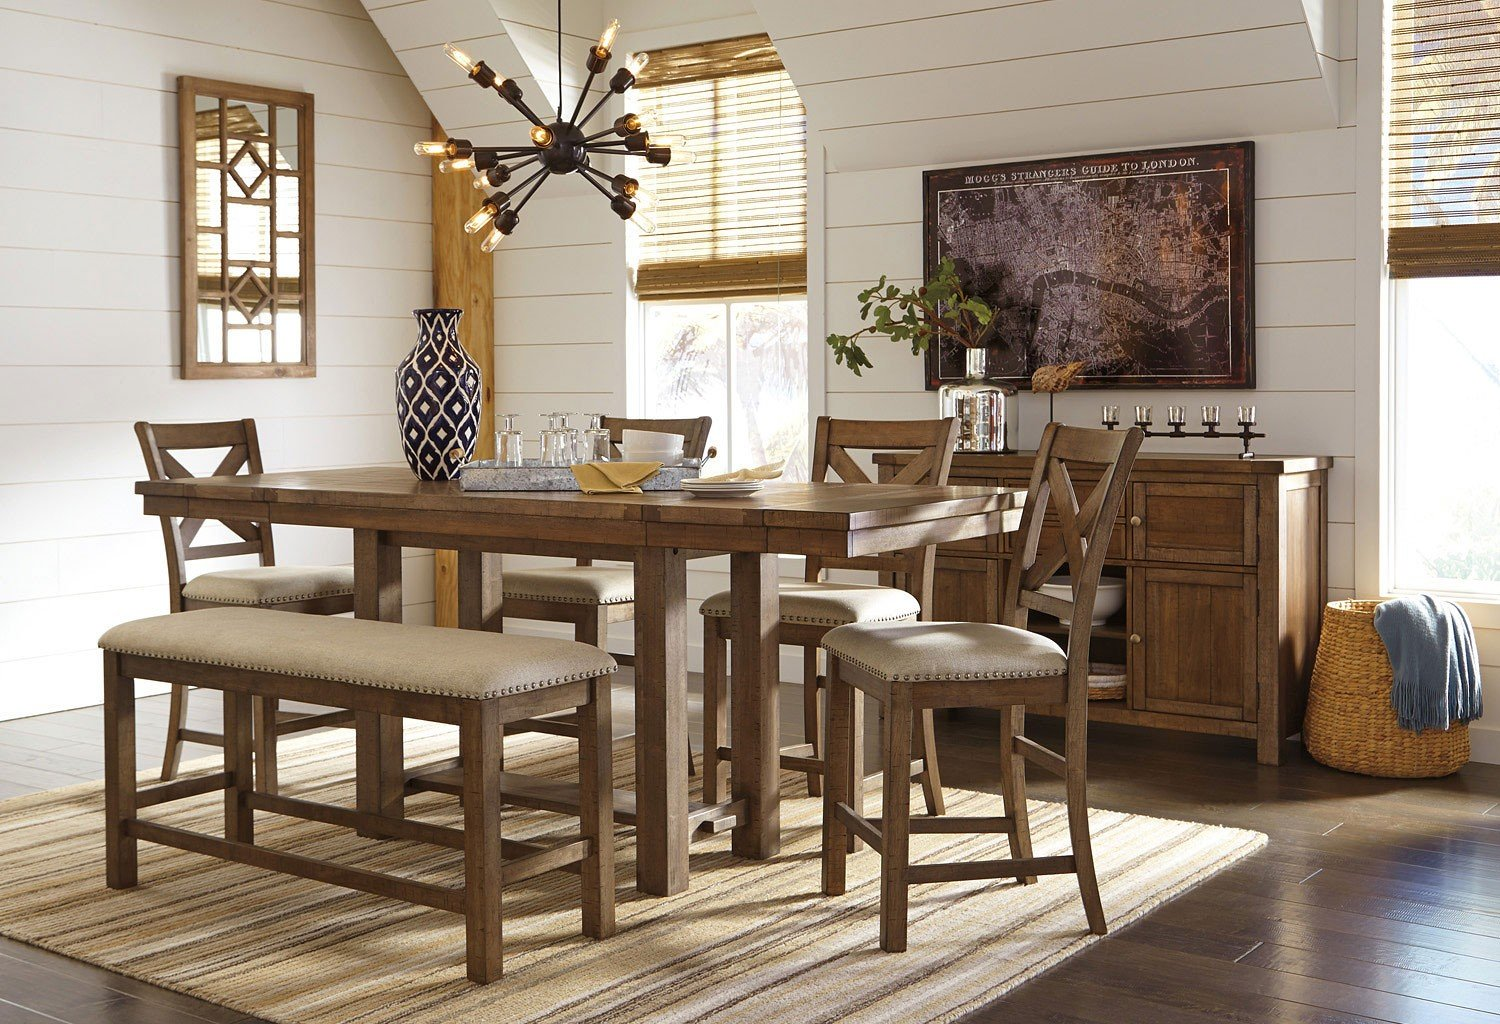 Miraculous Moriville Counter Height Dining Set W Bench Ncnpc Chair Design For Home Ncnpcorg